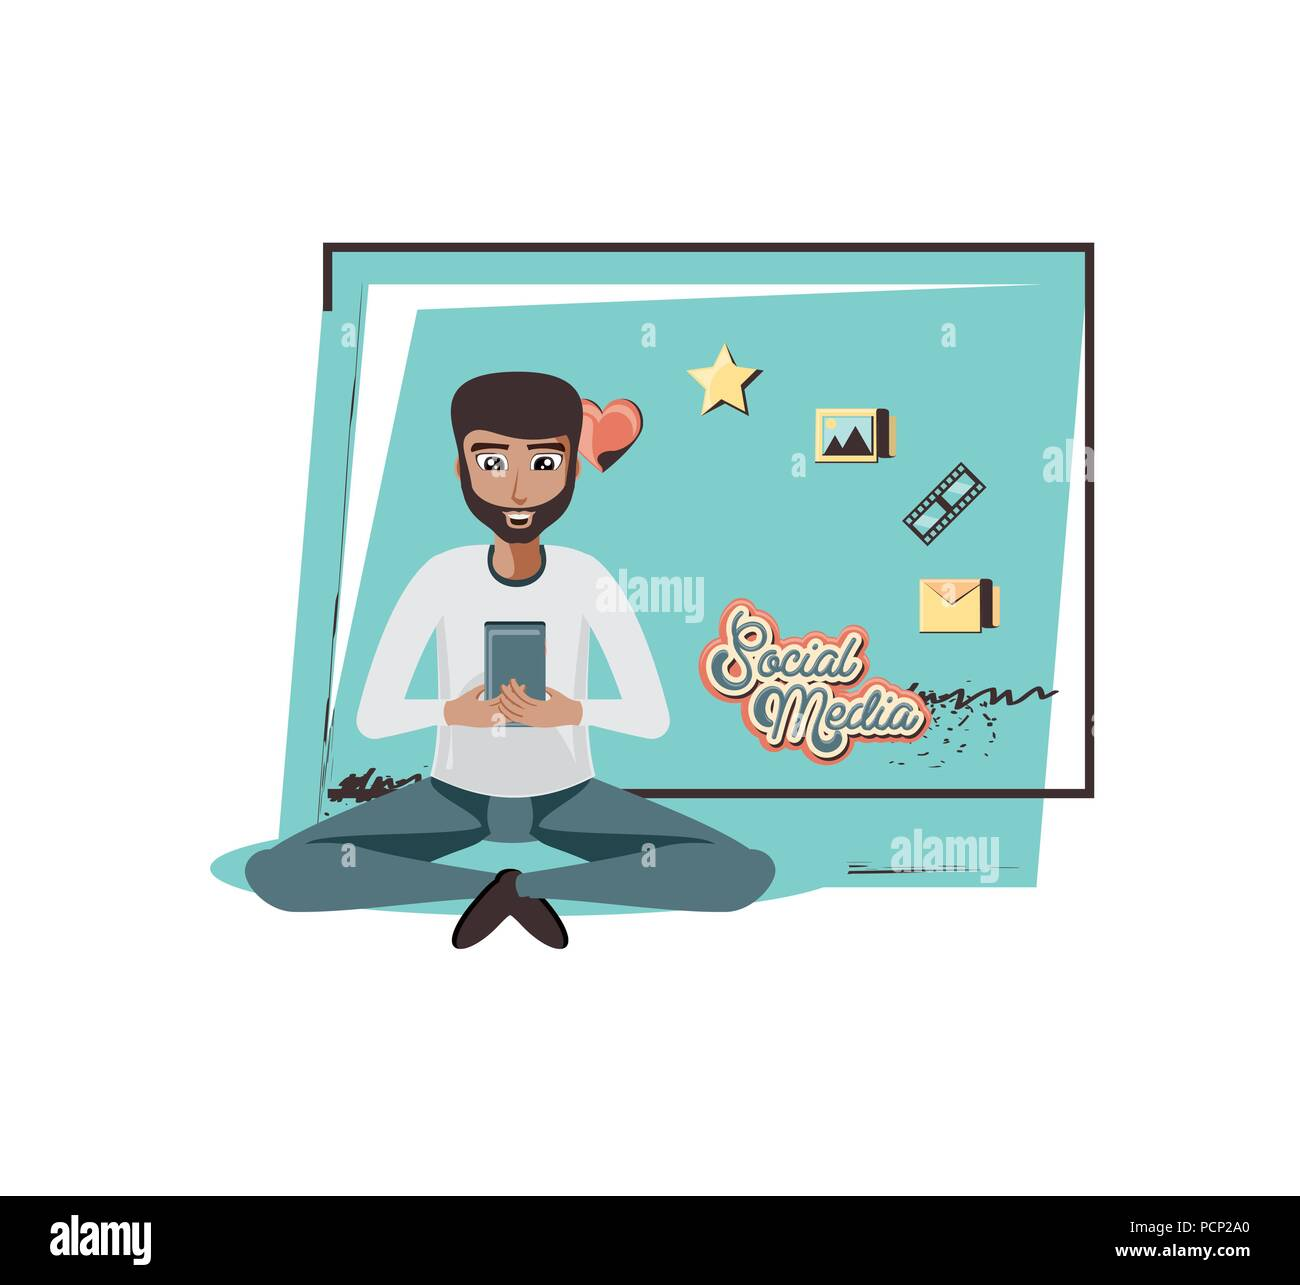 man with smartphone social media icons vector illustration design - Stock Image